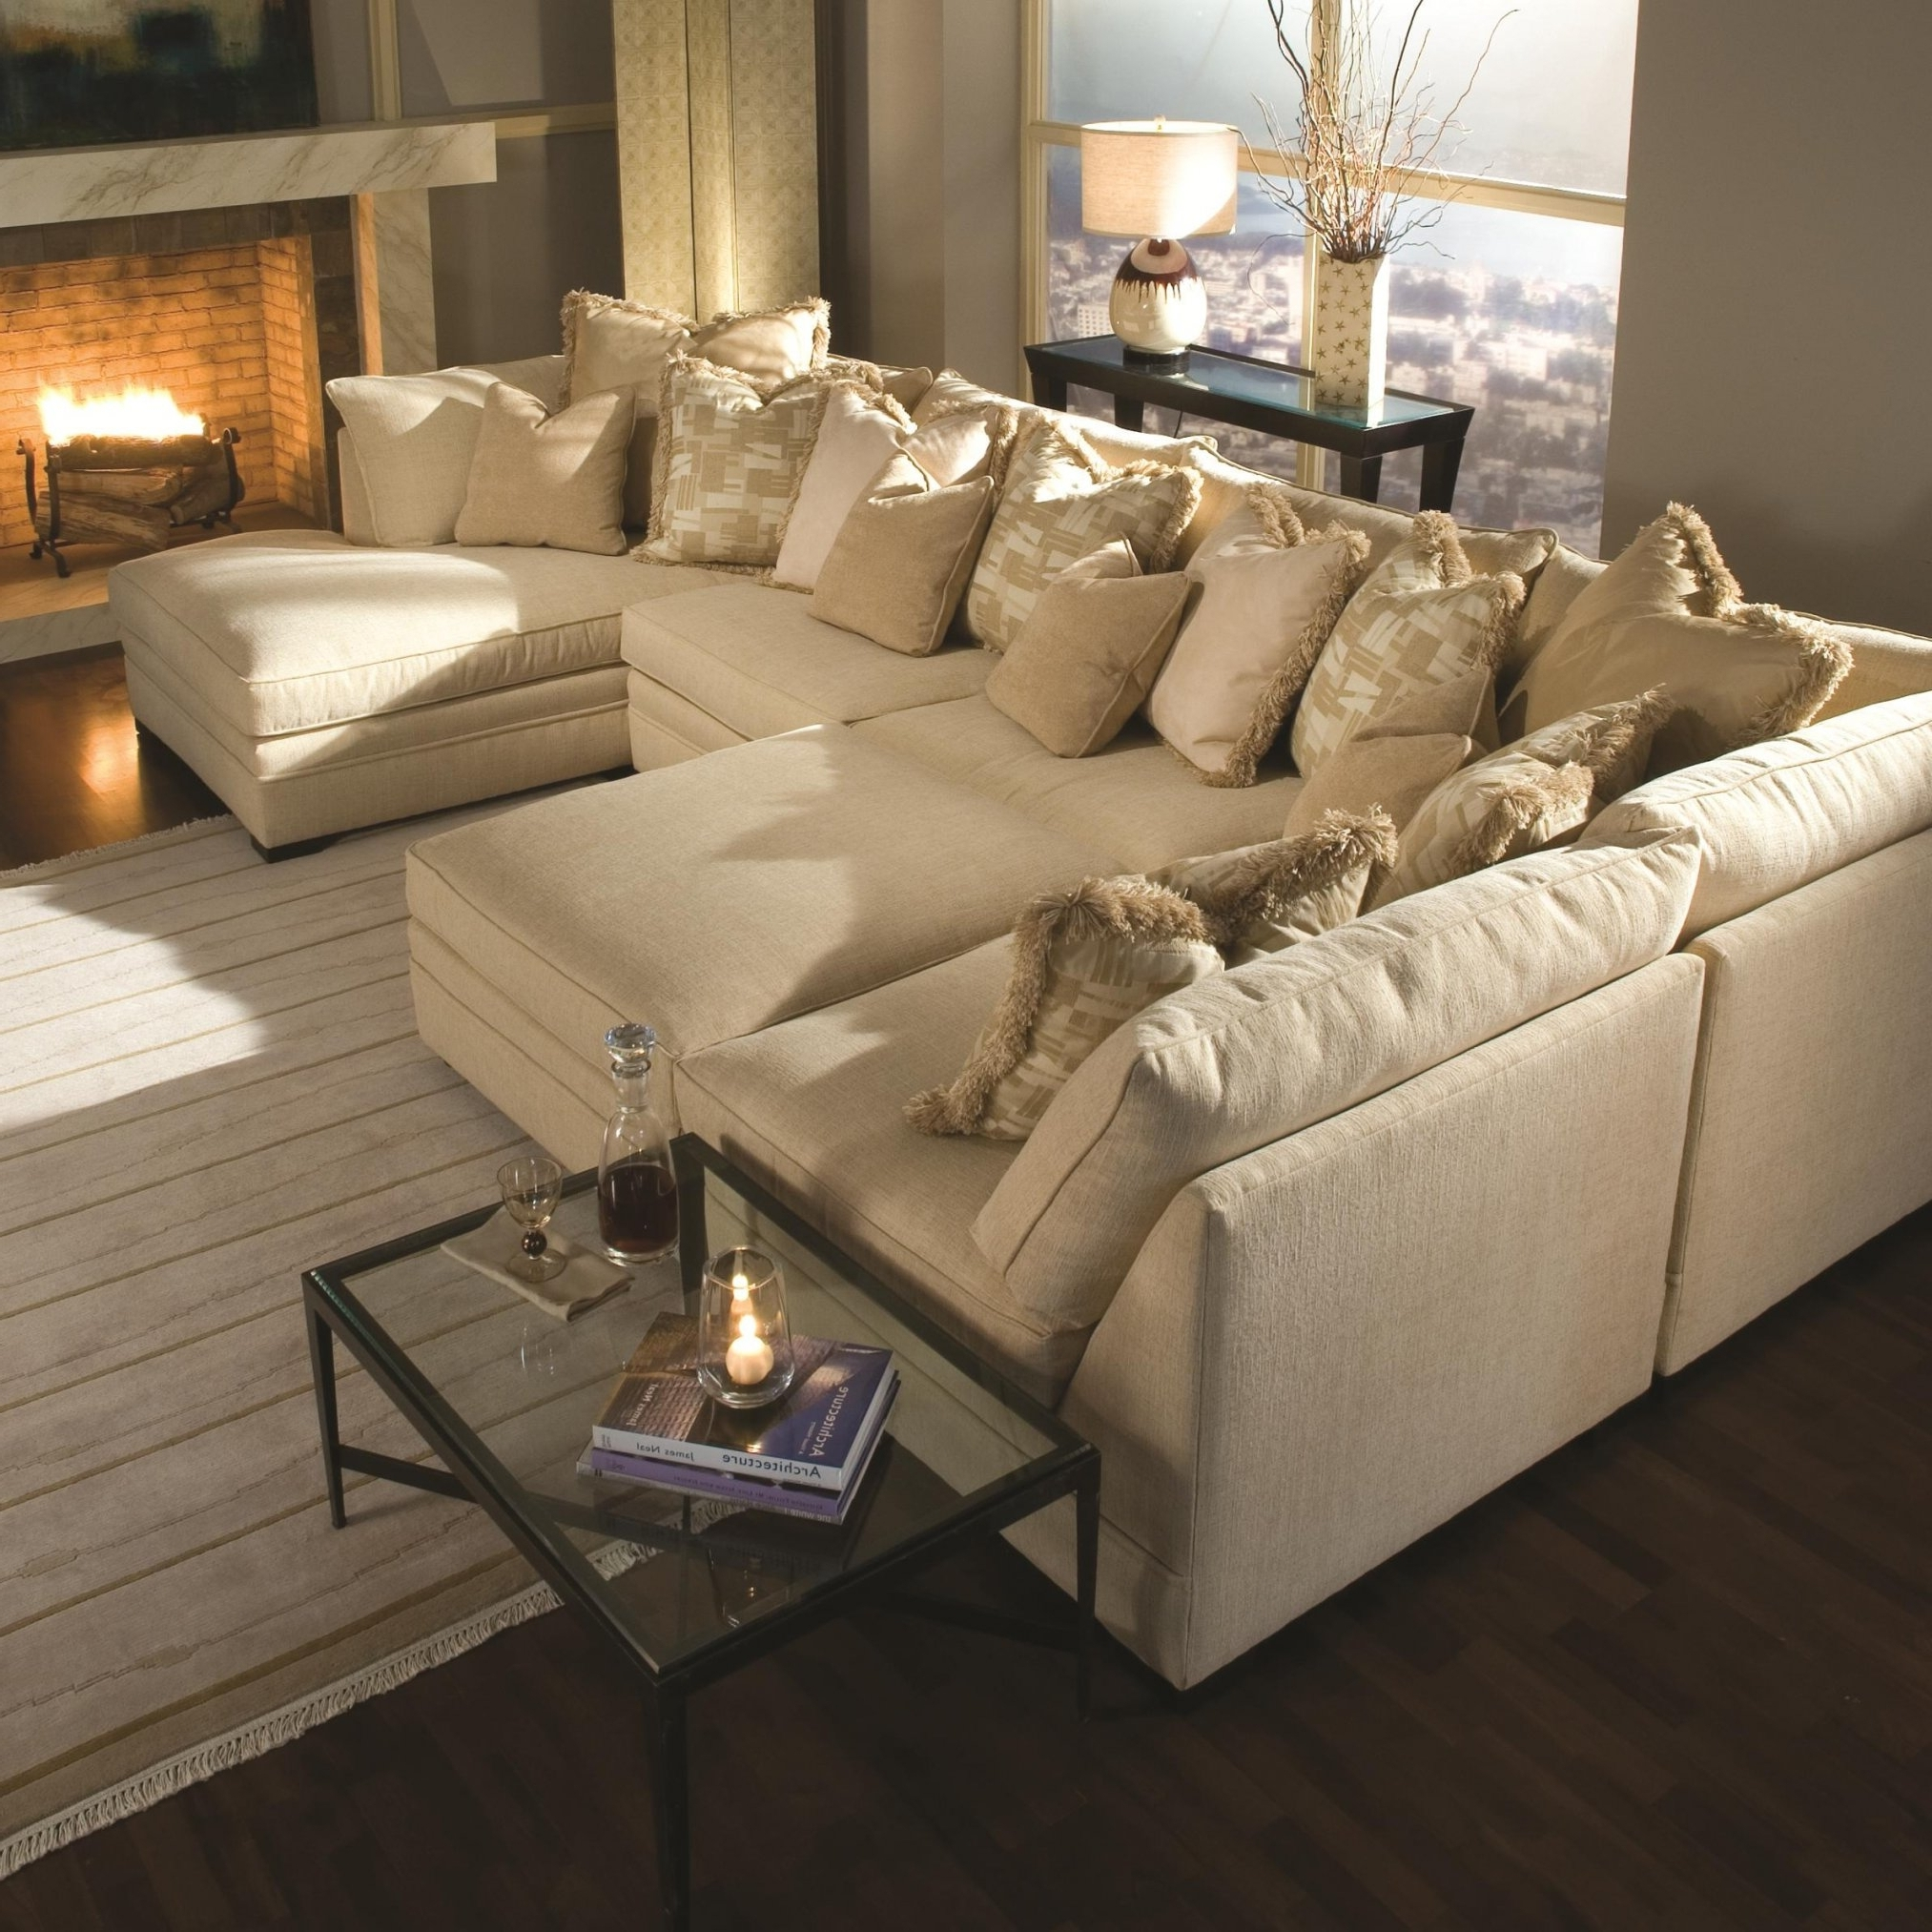 Double Chaise Sectional Sofas With Regard To Well Known House 7100 Contemporary U Shape Sectional Sofa With With Regard To (View 7 of 15)